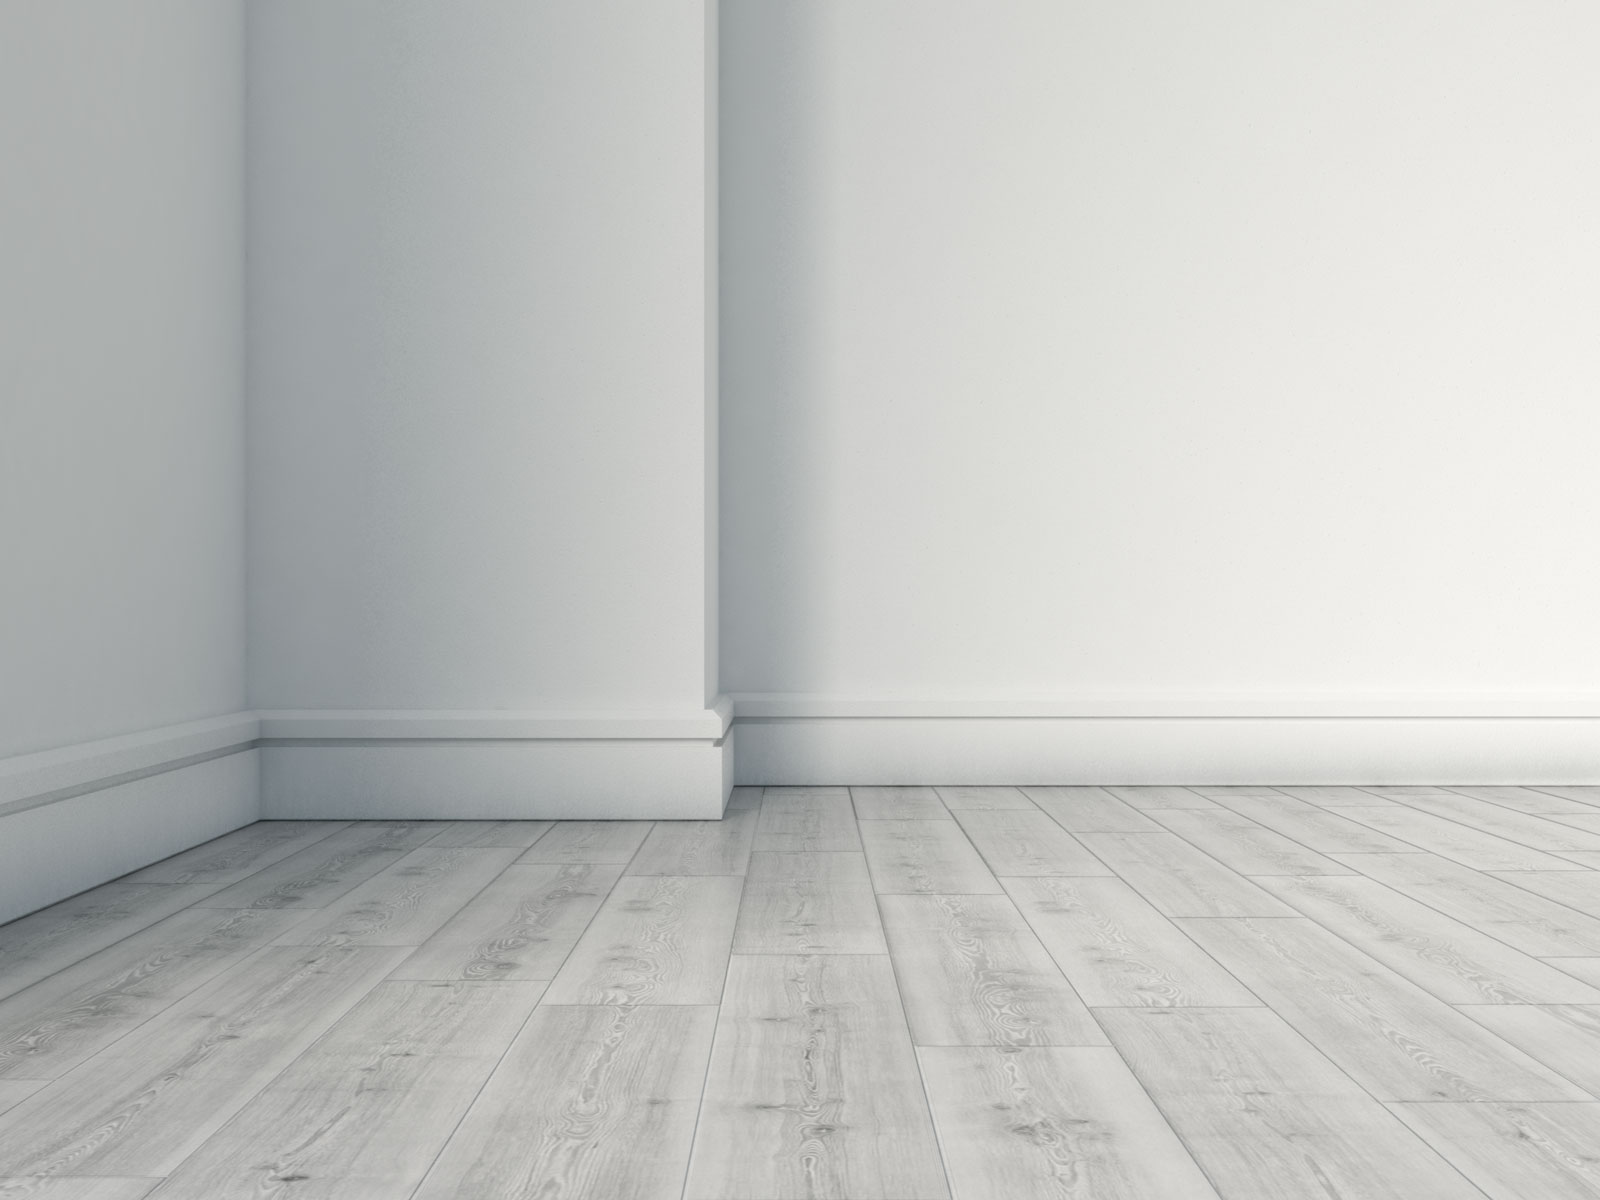 White baseboard with gray flooring